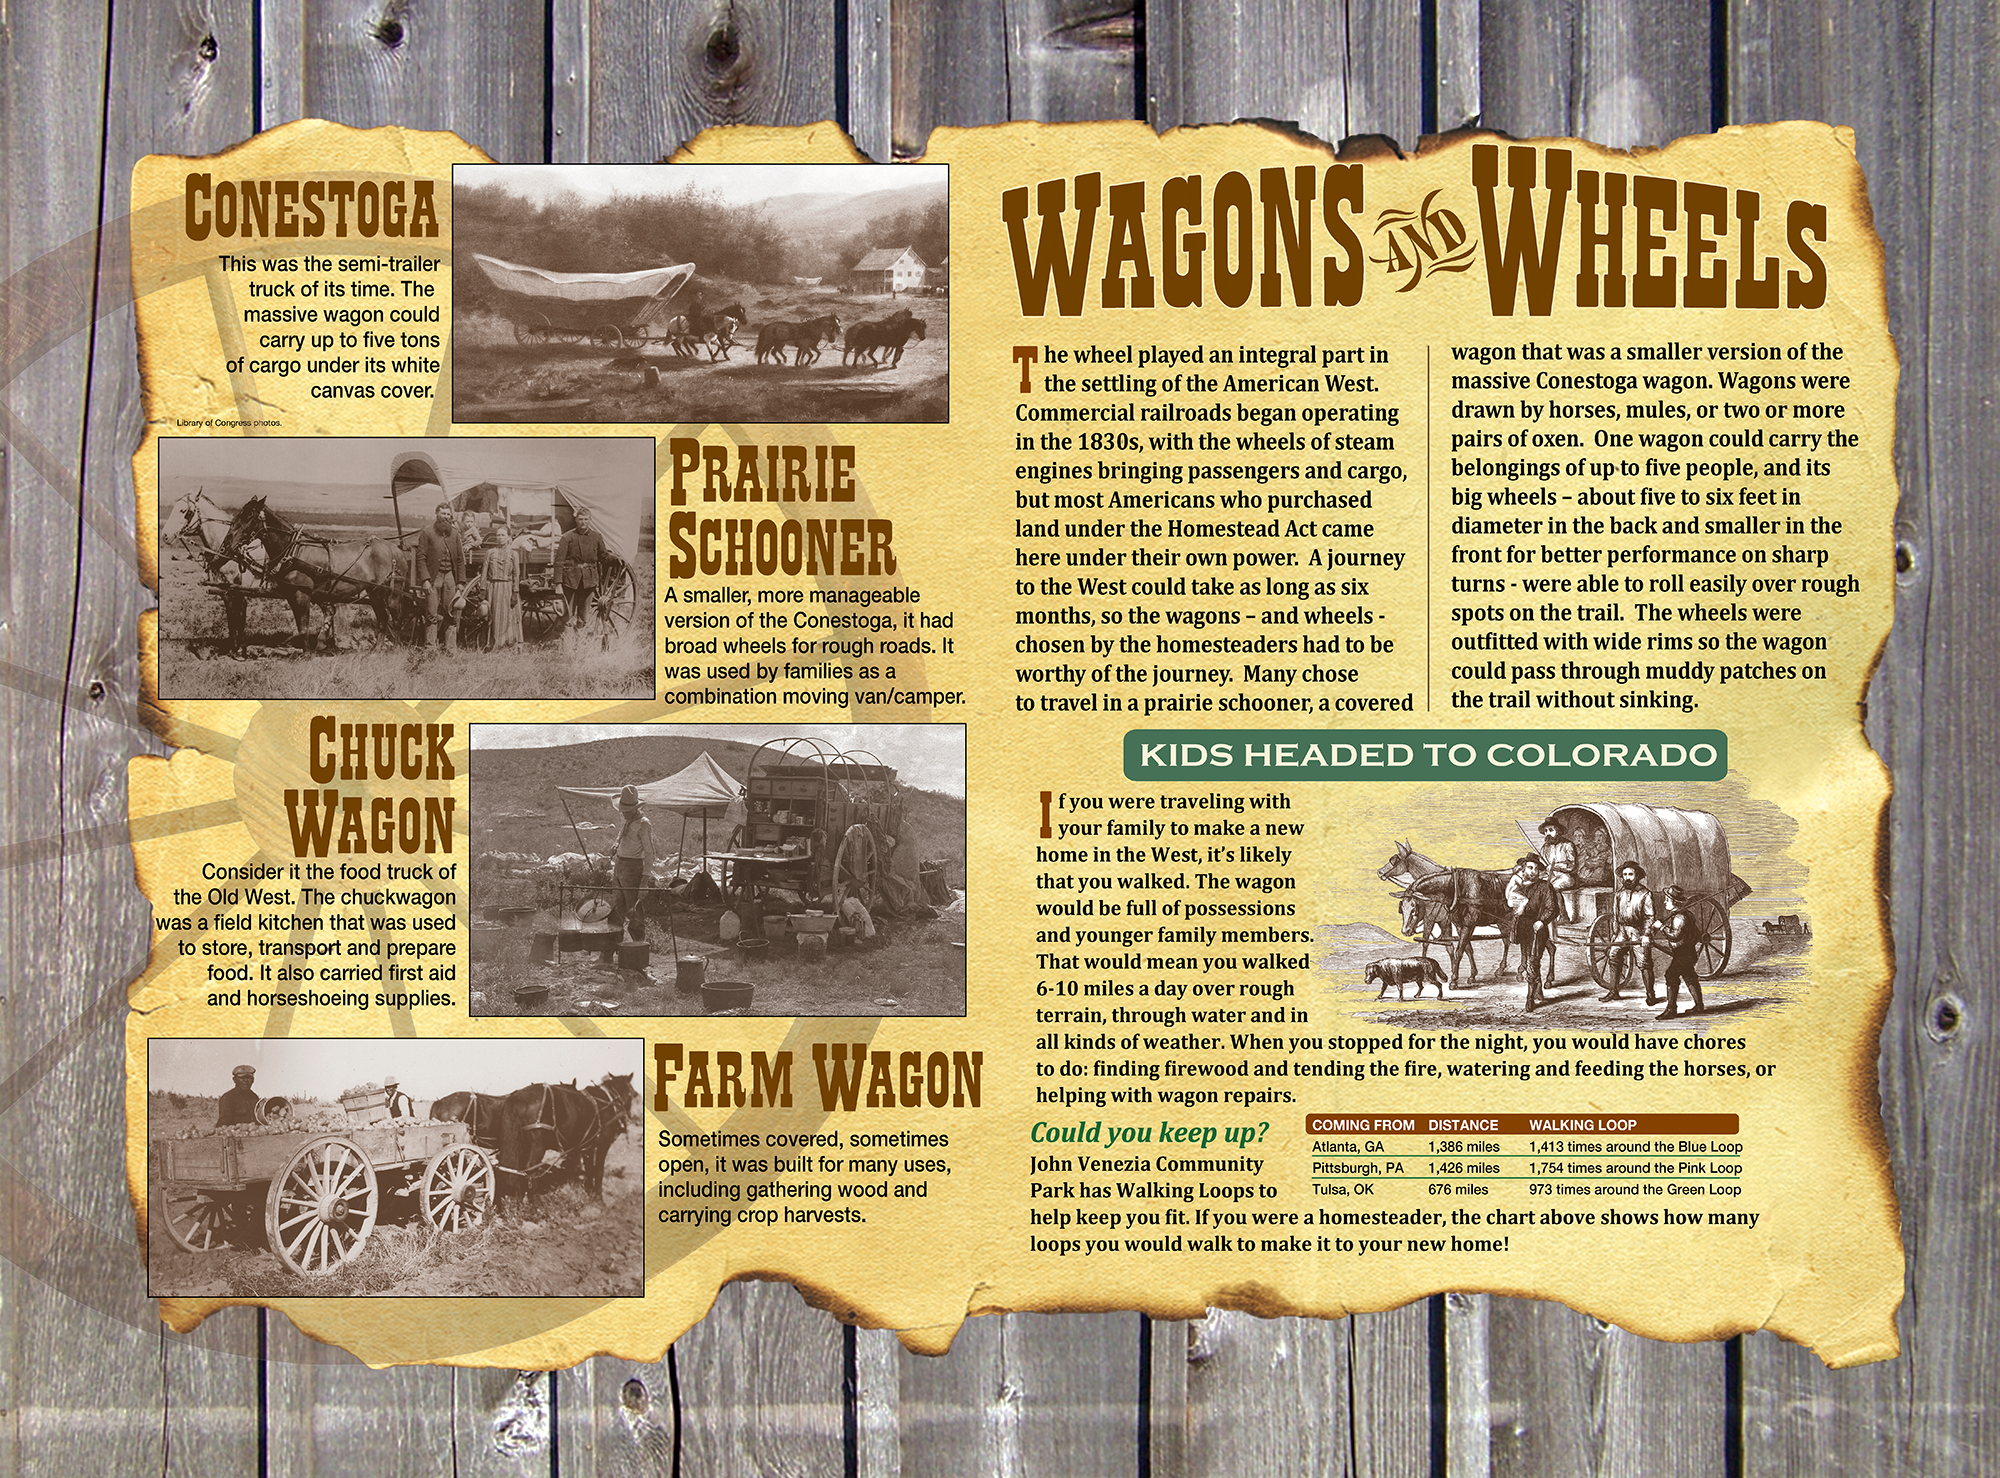 Wagons and Wheels